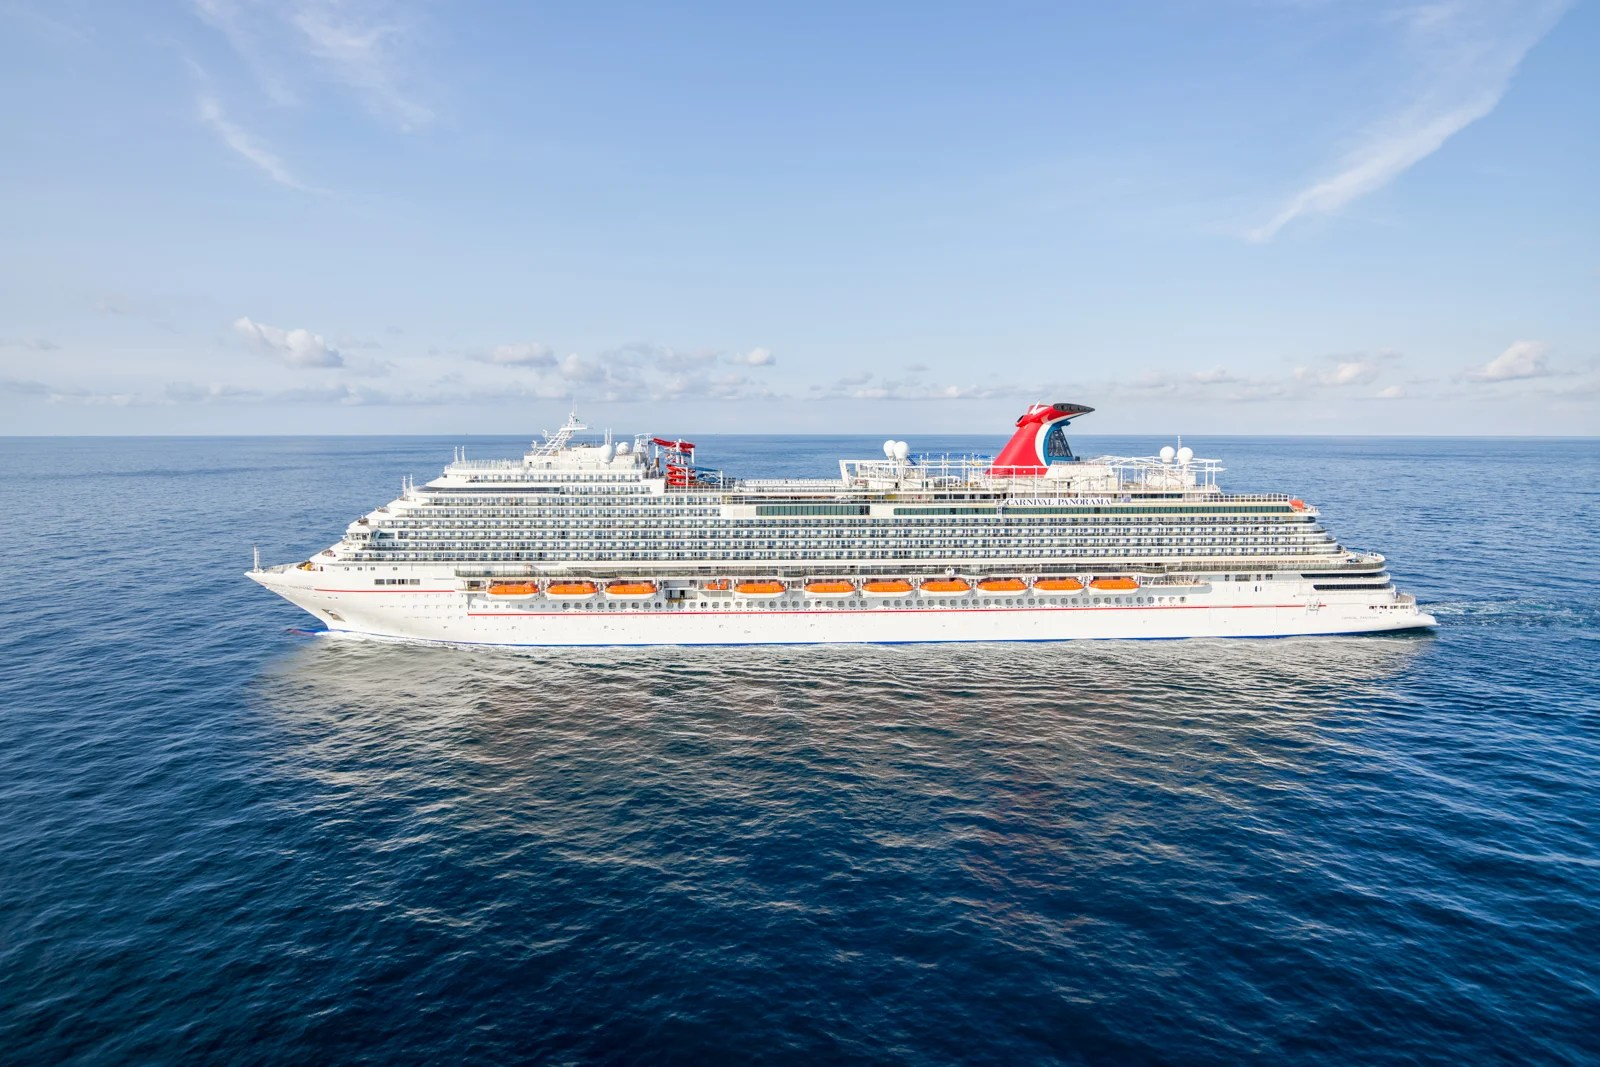 We got an early look at Carnival's first new ship in nearly two years